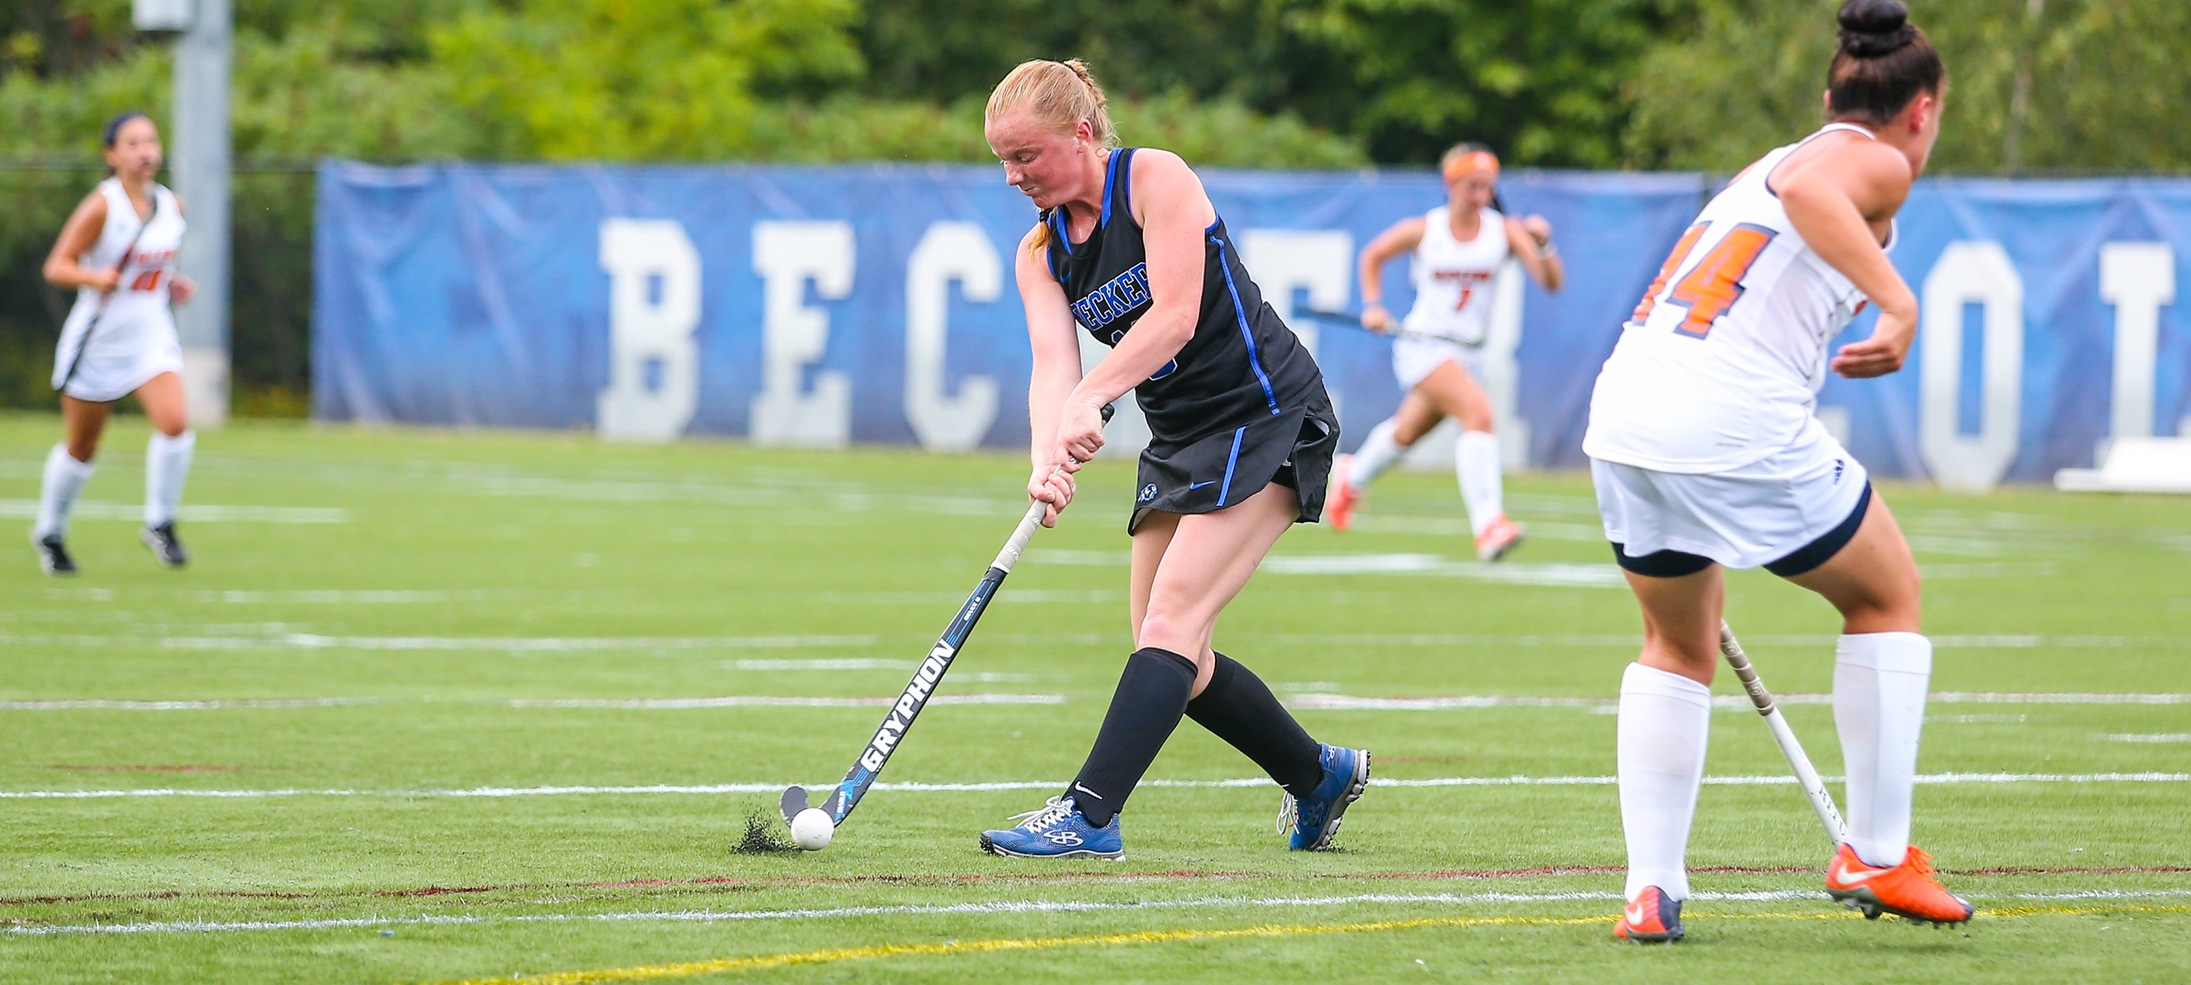 Lauren Niemann hitting the field hockey ball